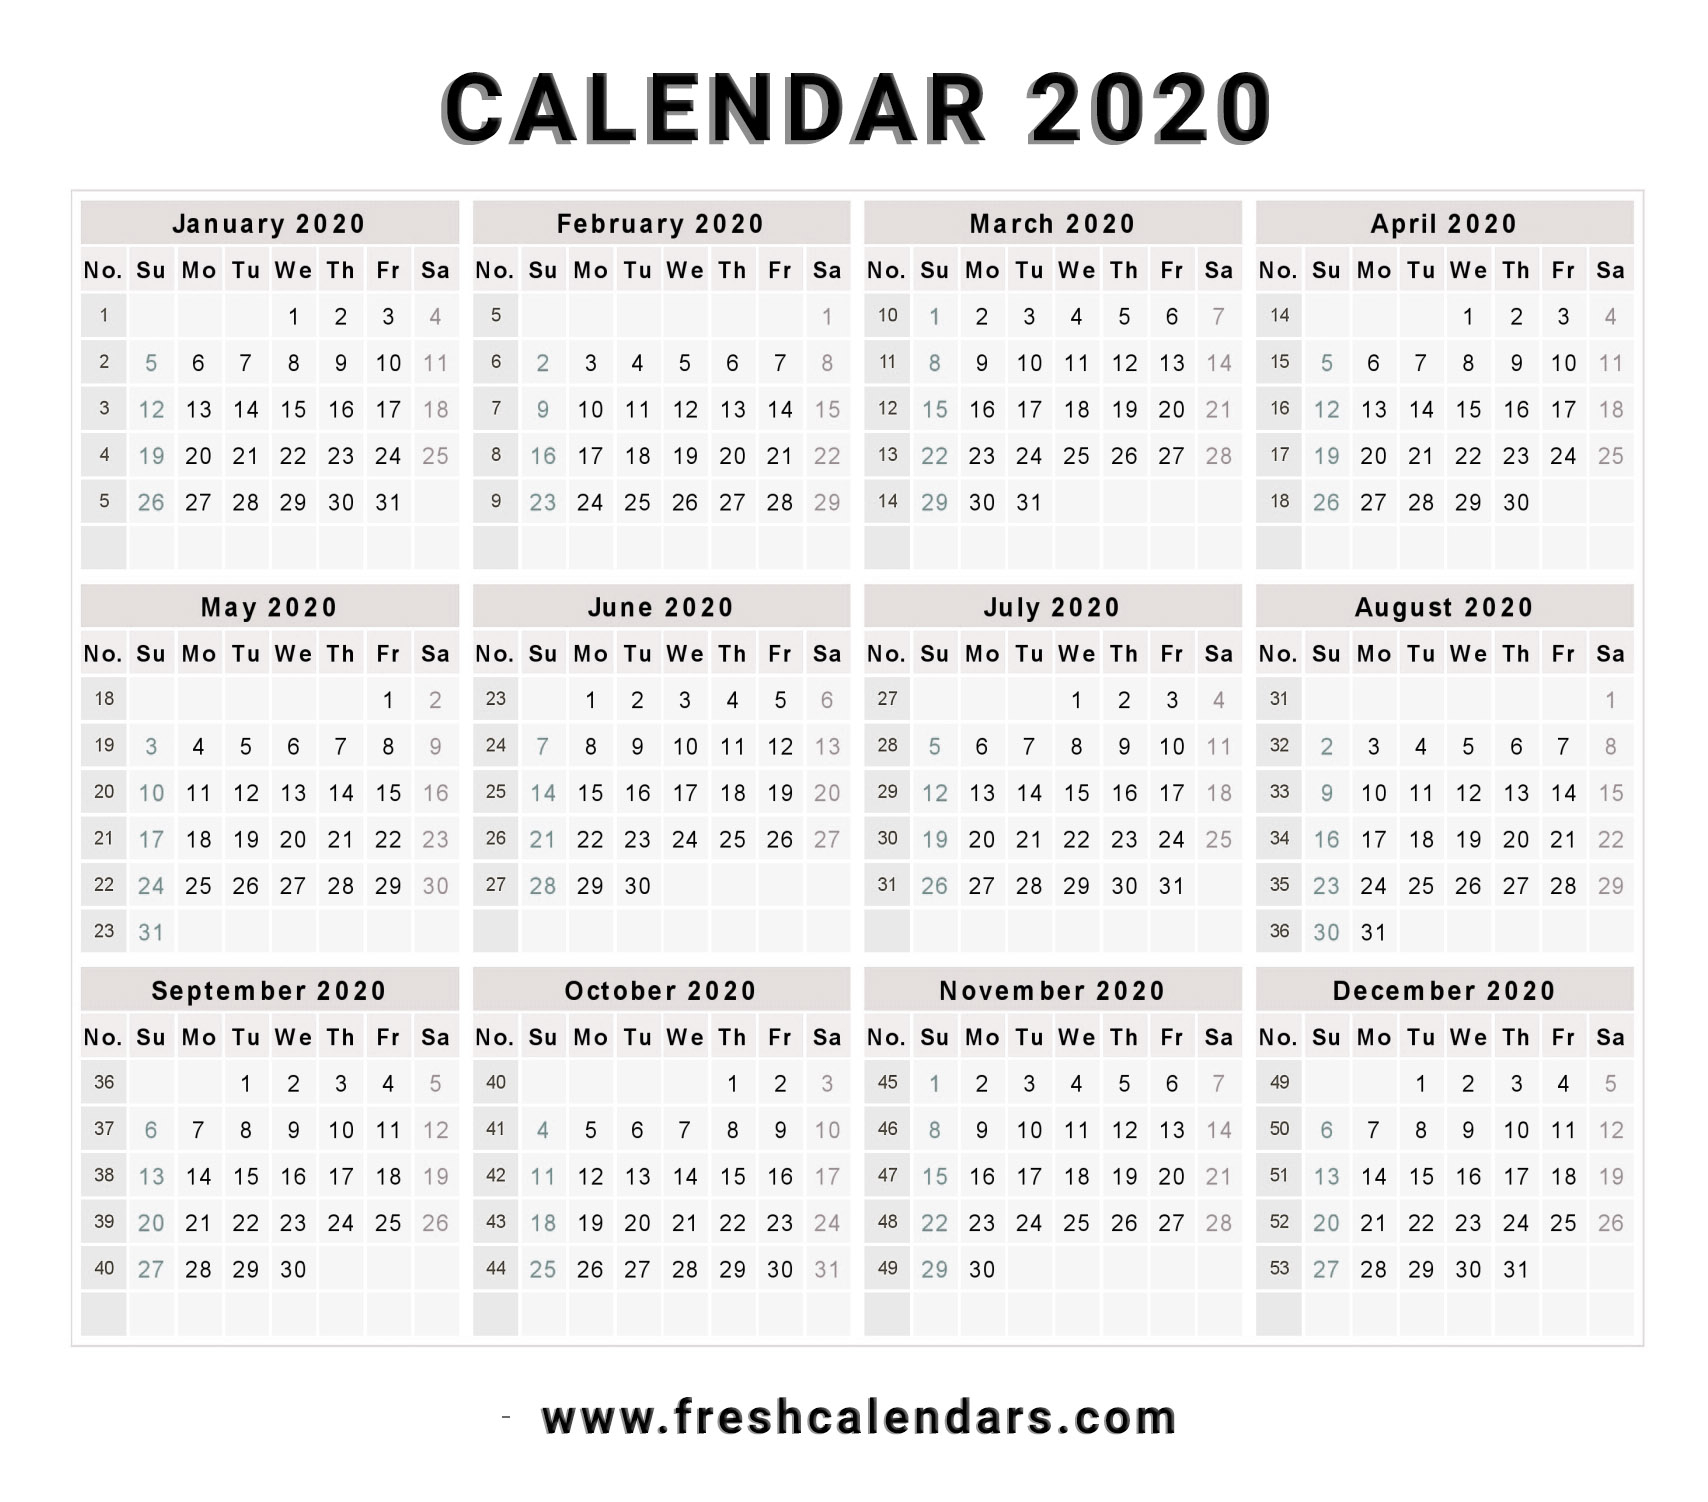 2020 Calendar throughout 2020 Calendars To Fill In